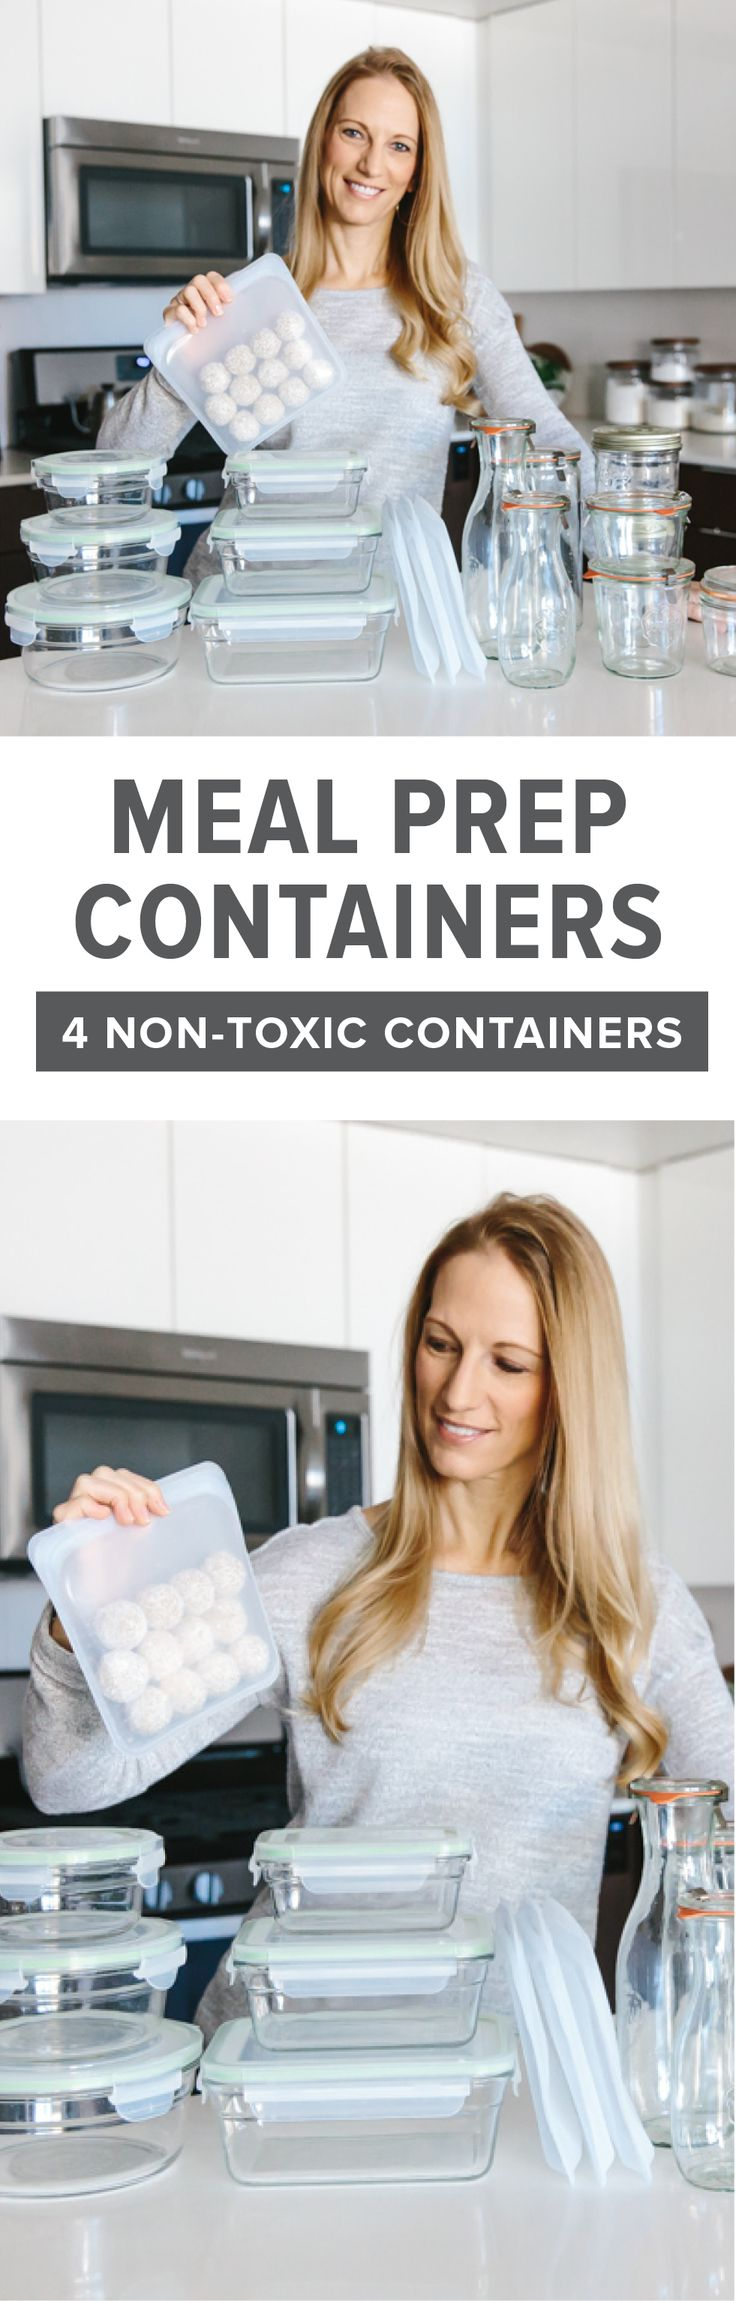 The best meal prep containers are durable and reusable, can be used in both cold storage and warmed up and are non-toxic. That means no plastic. So my favorite meal prep containers are all made from glass and silicone. #mealprep #mealprepcontainers